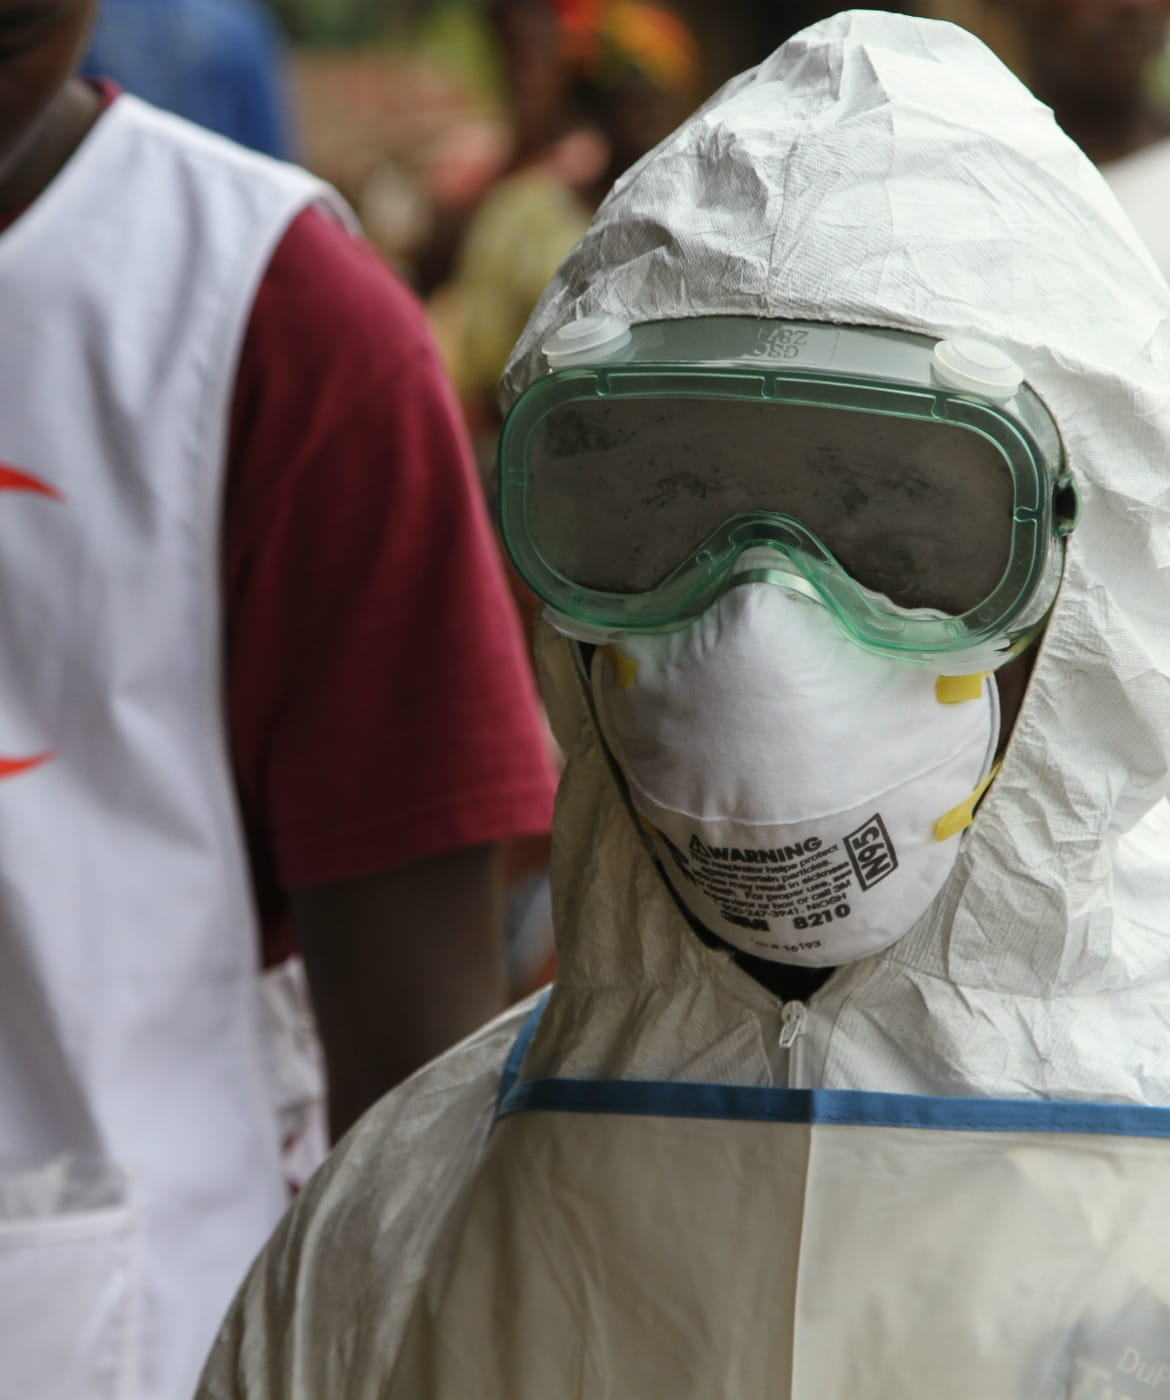 The Red Cross on the ground during an Ebola virus outbreak.